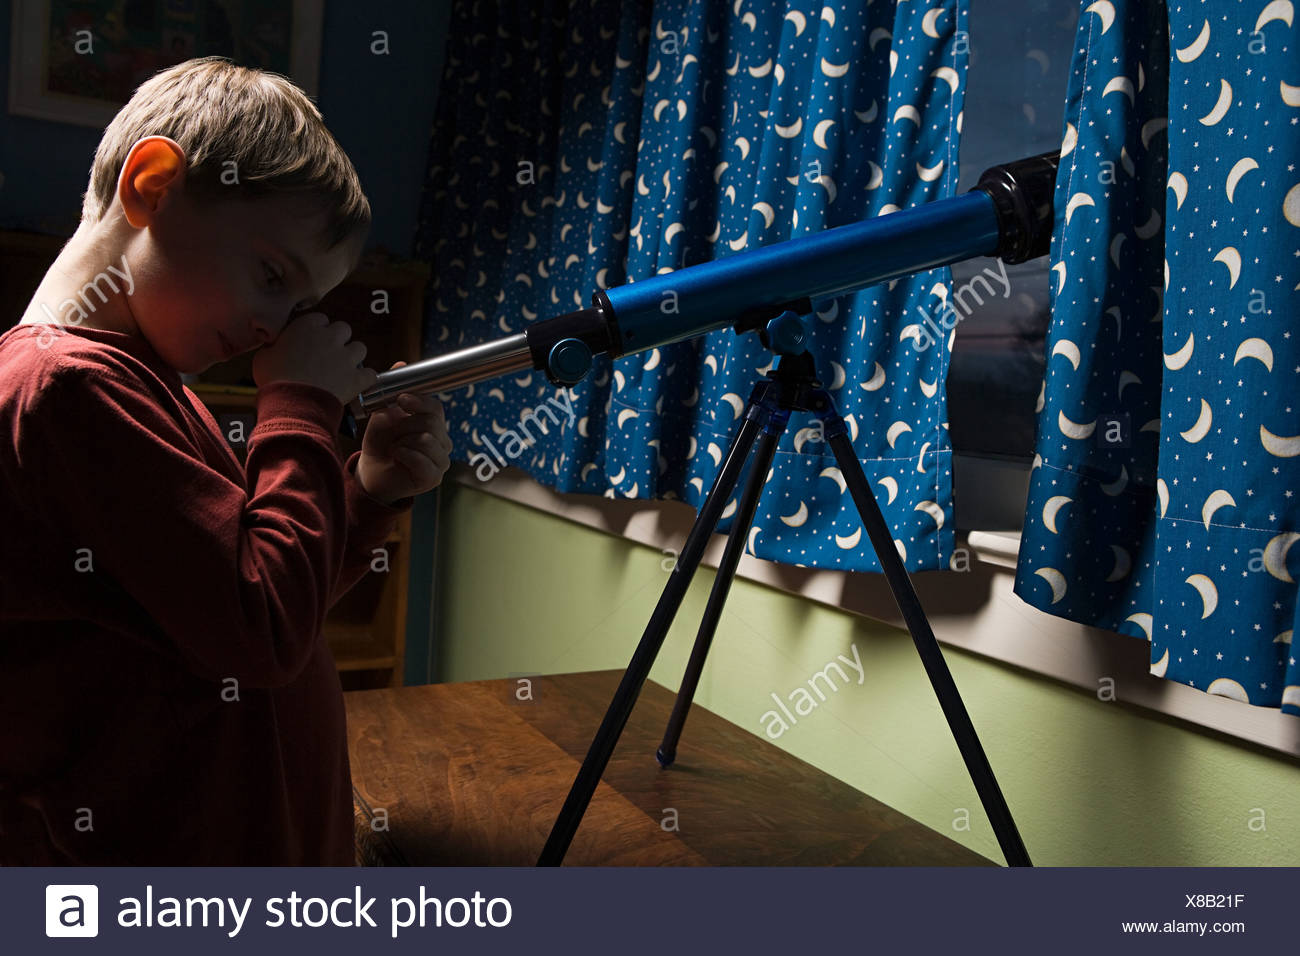 Boy looking through a telescope - Stock Image